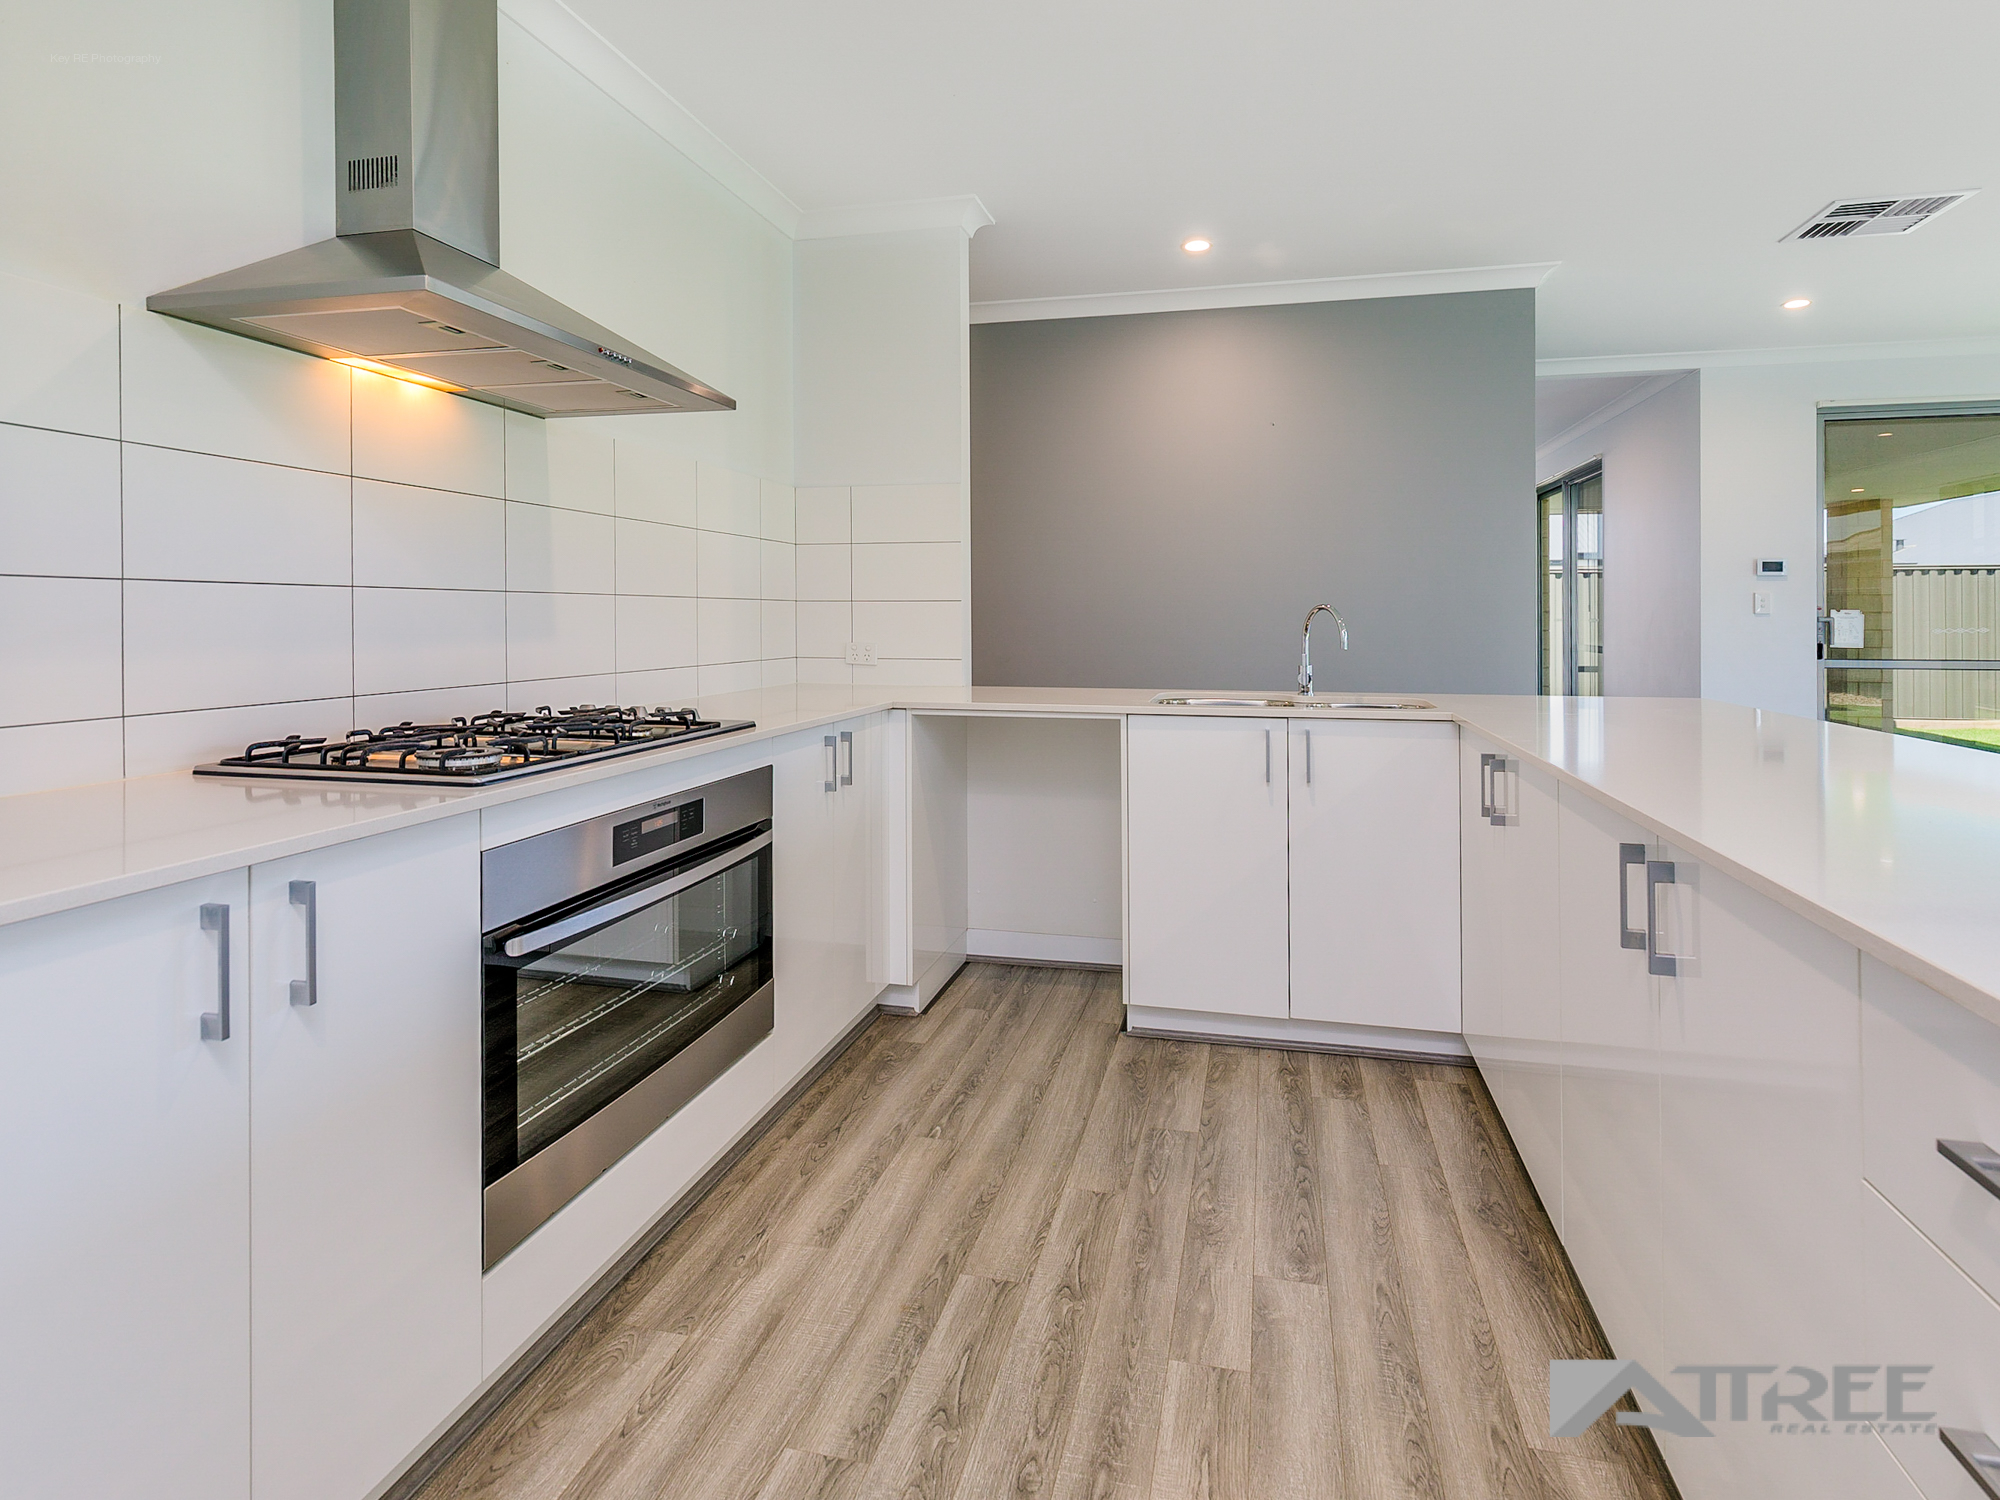 Property for sale in HAYNES, 42 Mandalup Road : Attree Real Estate